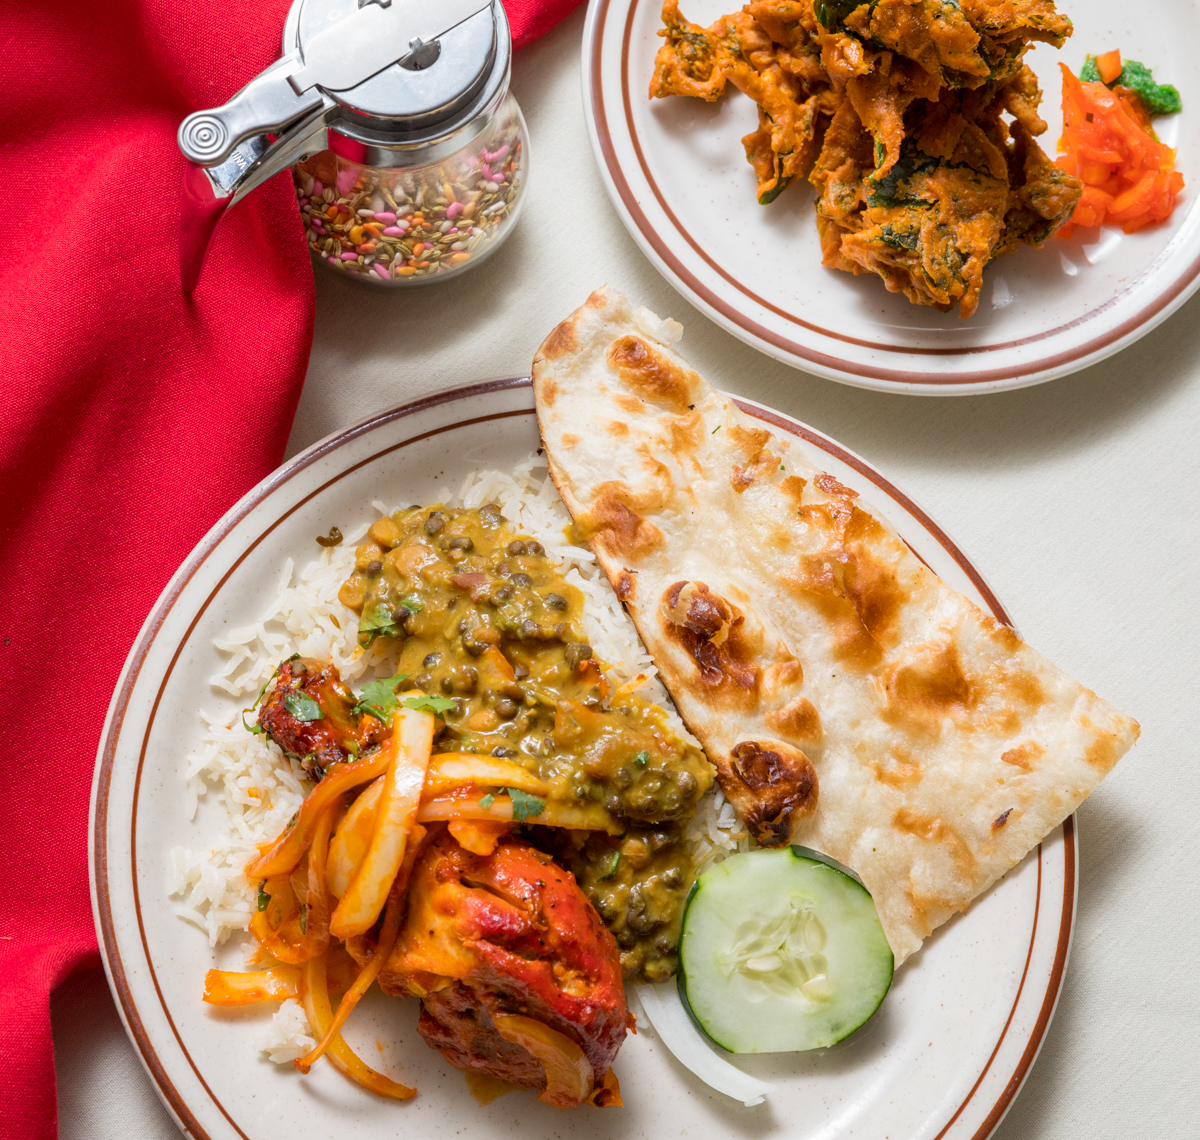 Is it just us or does the Greater Cincinnati area have truly amazing Indian cuisine? No matter what neighborhood you live in around Cincinnati and NKY, there's an excellent Indian restaurant nearby. With so many carryout options, fighting cold winter nights is easy with a hot curry. We're thankful for all the excellent chefs doing fine work in those kitchens. / Image: Marlene Rounds // Published: 11.26.20